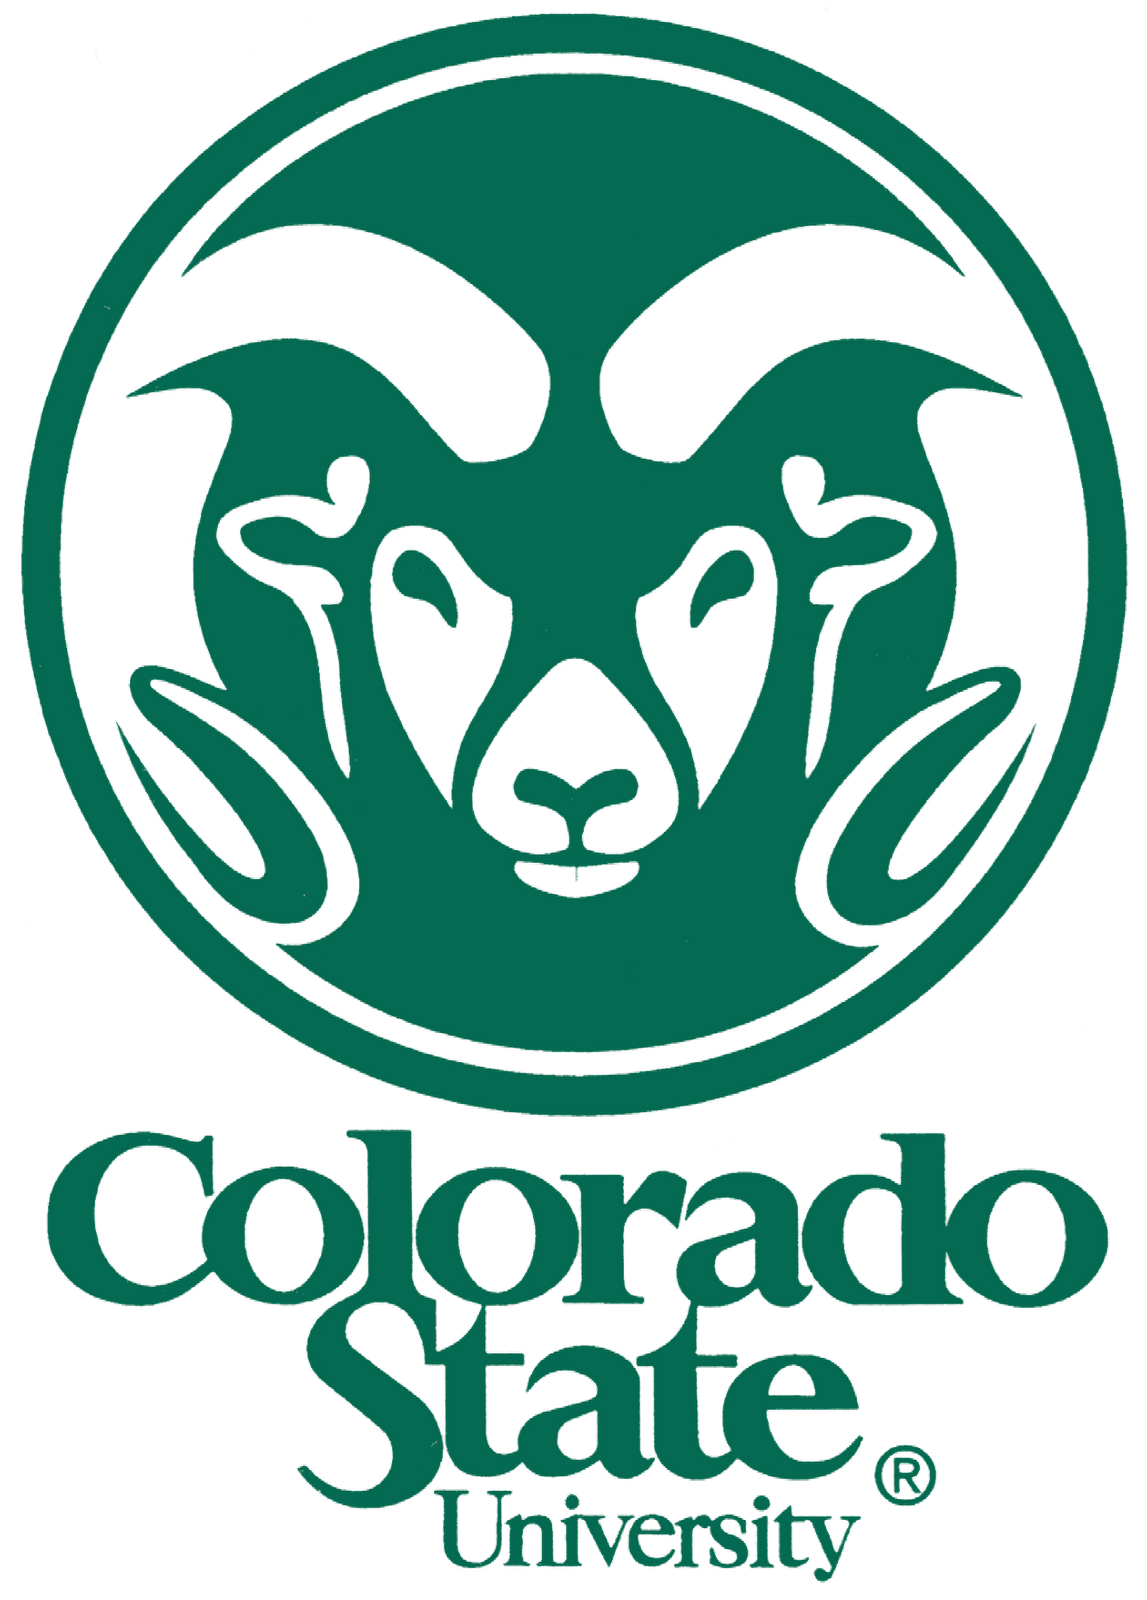 Colorado State University, College of Business, Department of Finance & Real Estate